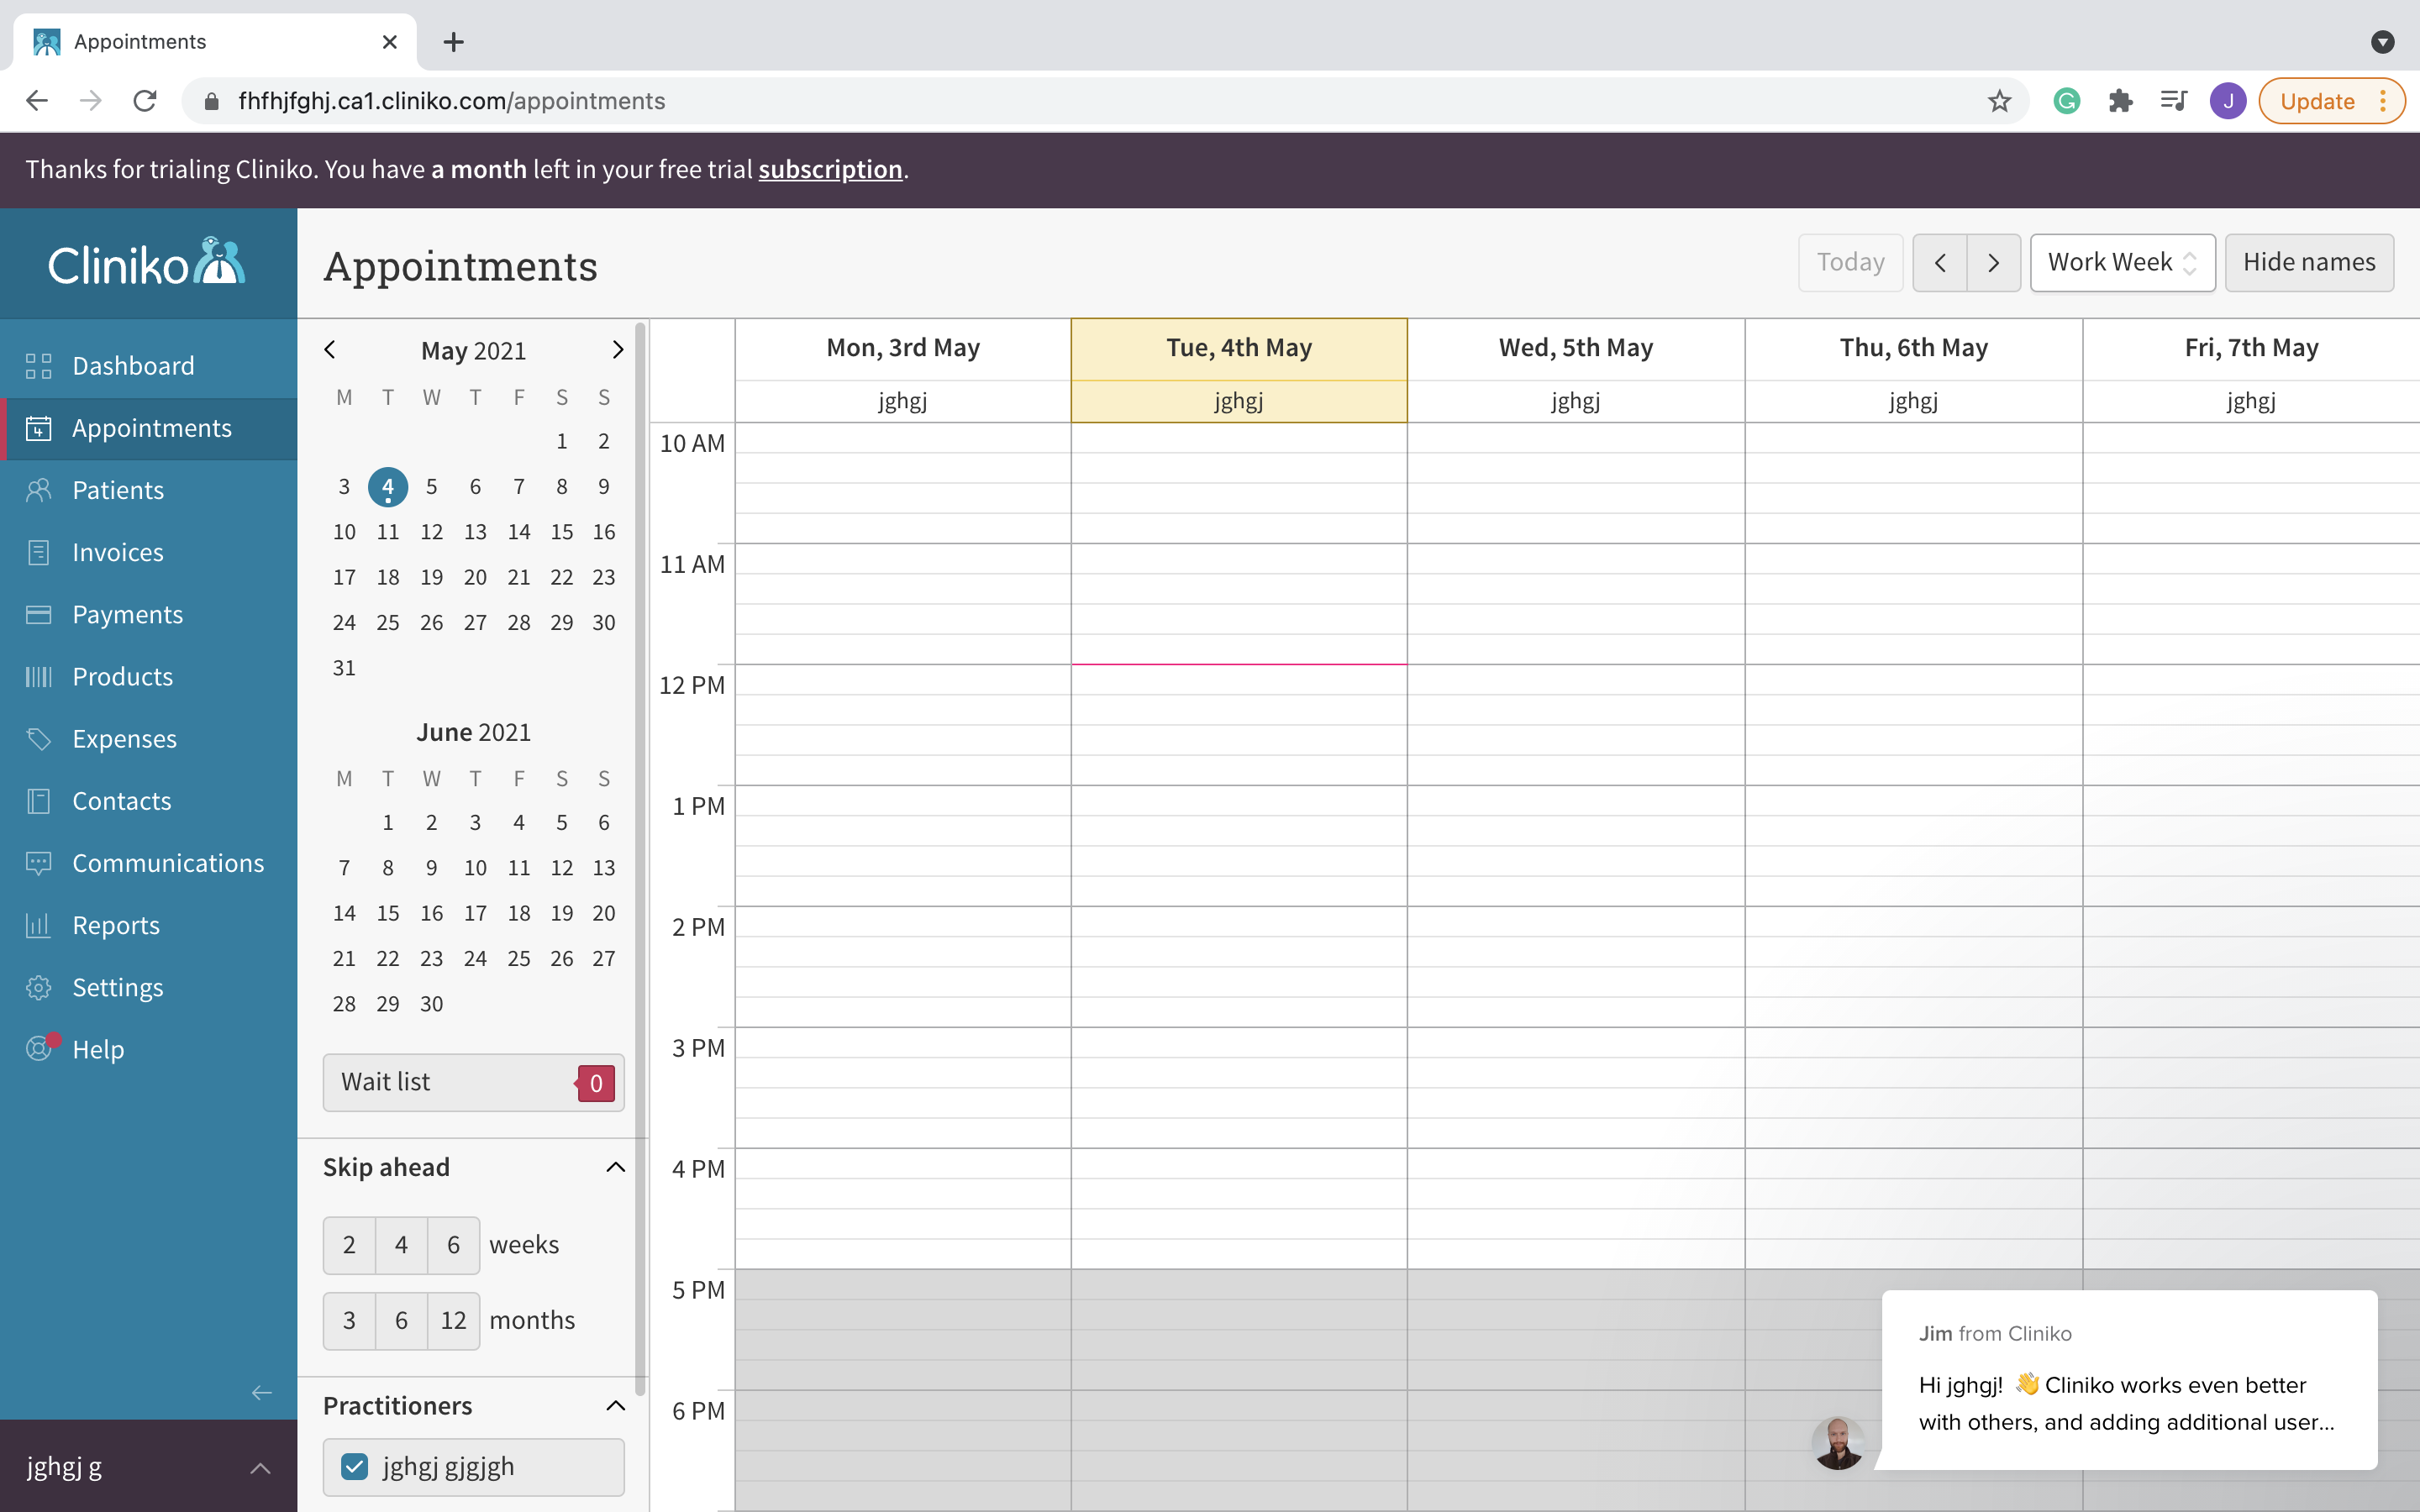 Cliniko client appointment scheduling